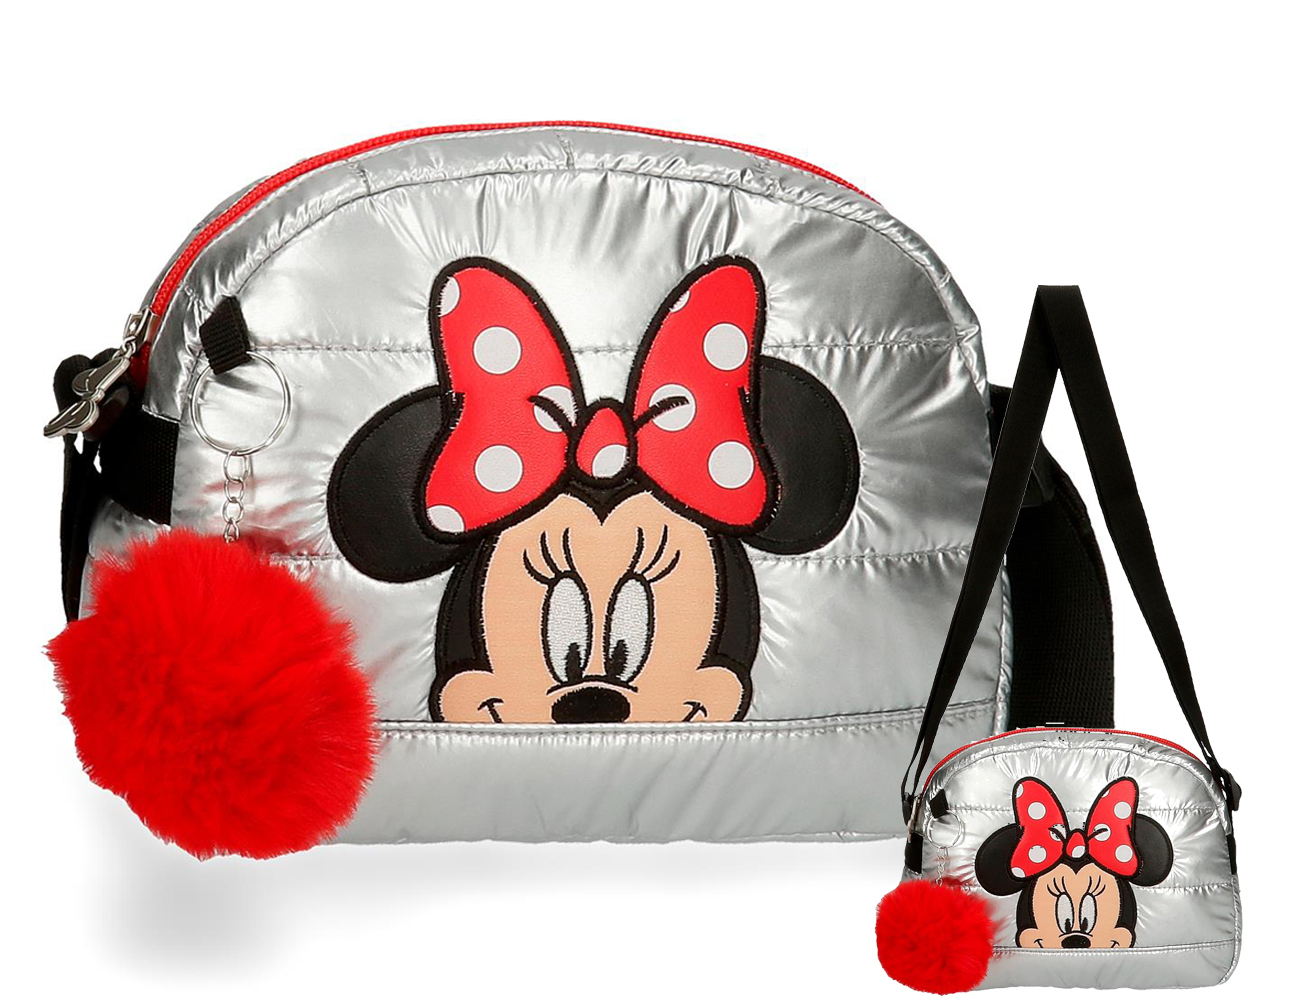 2165721 Bandolera Minnie My Pretty Bow